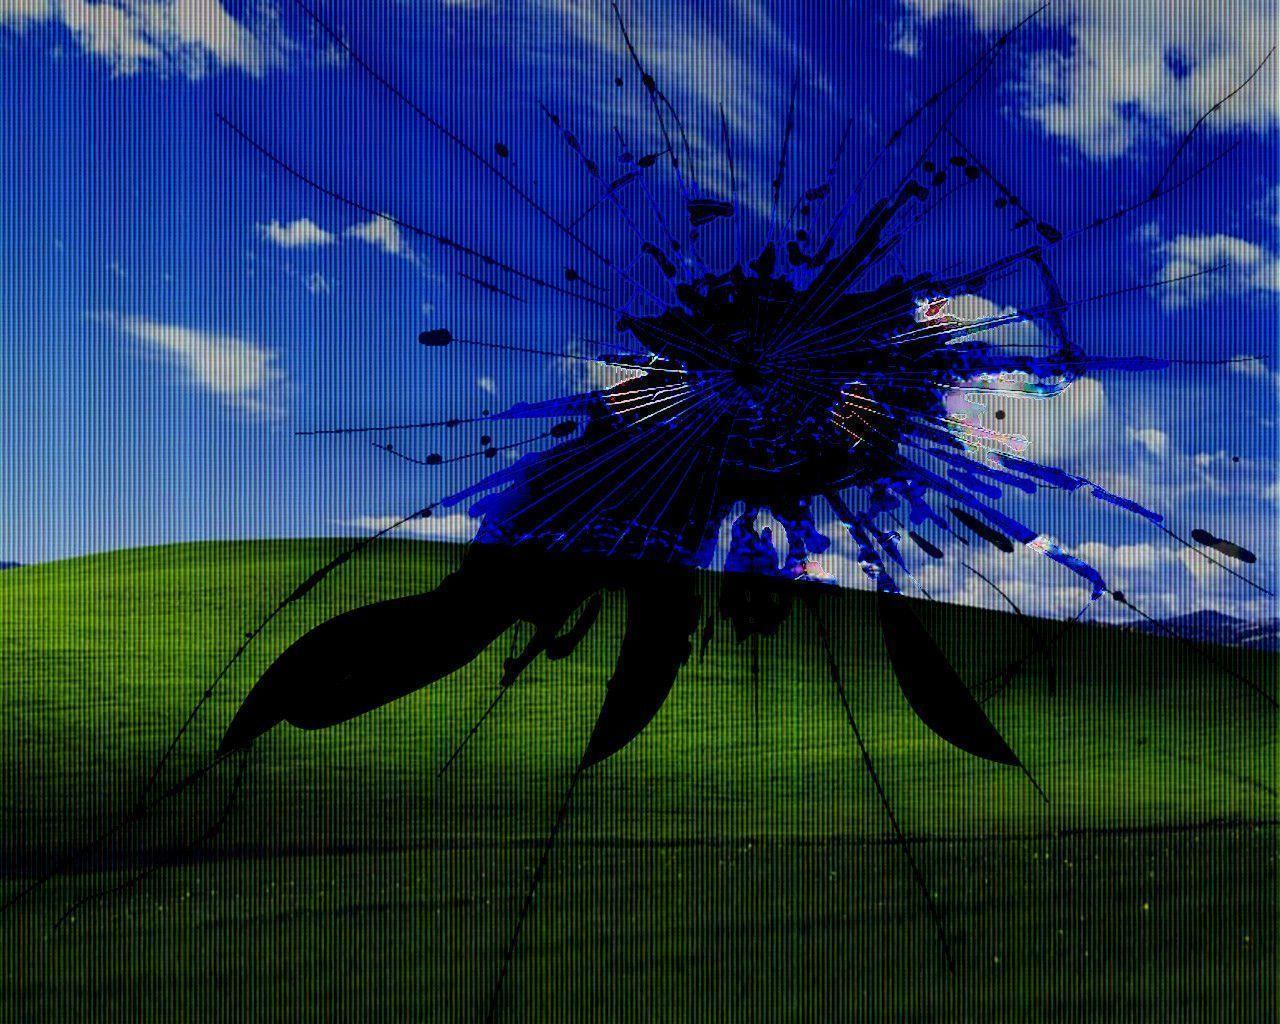 Windows 7 Broken Screen Widescreen HD Wallpapers